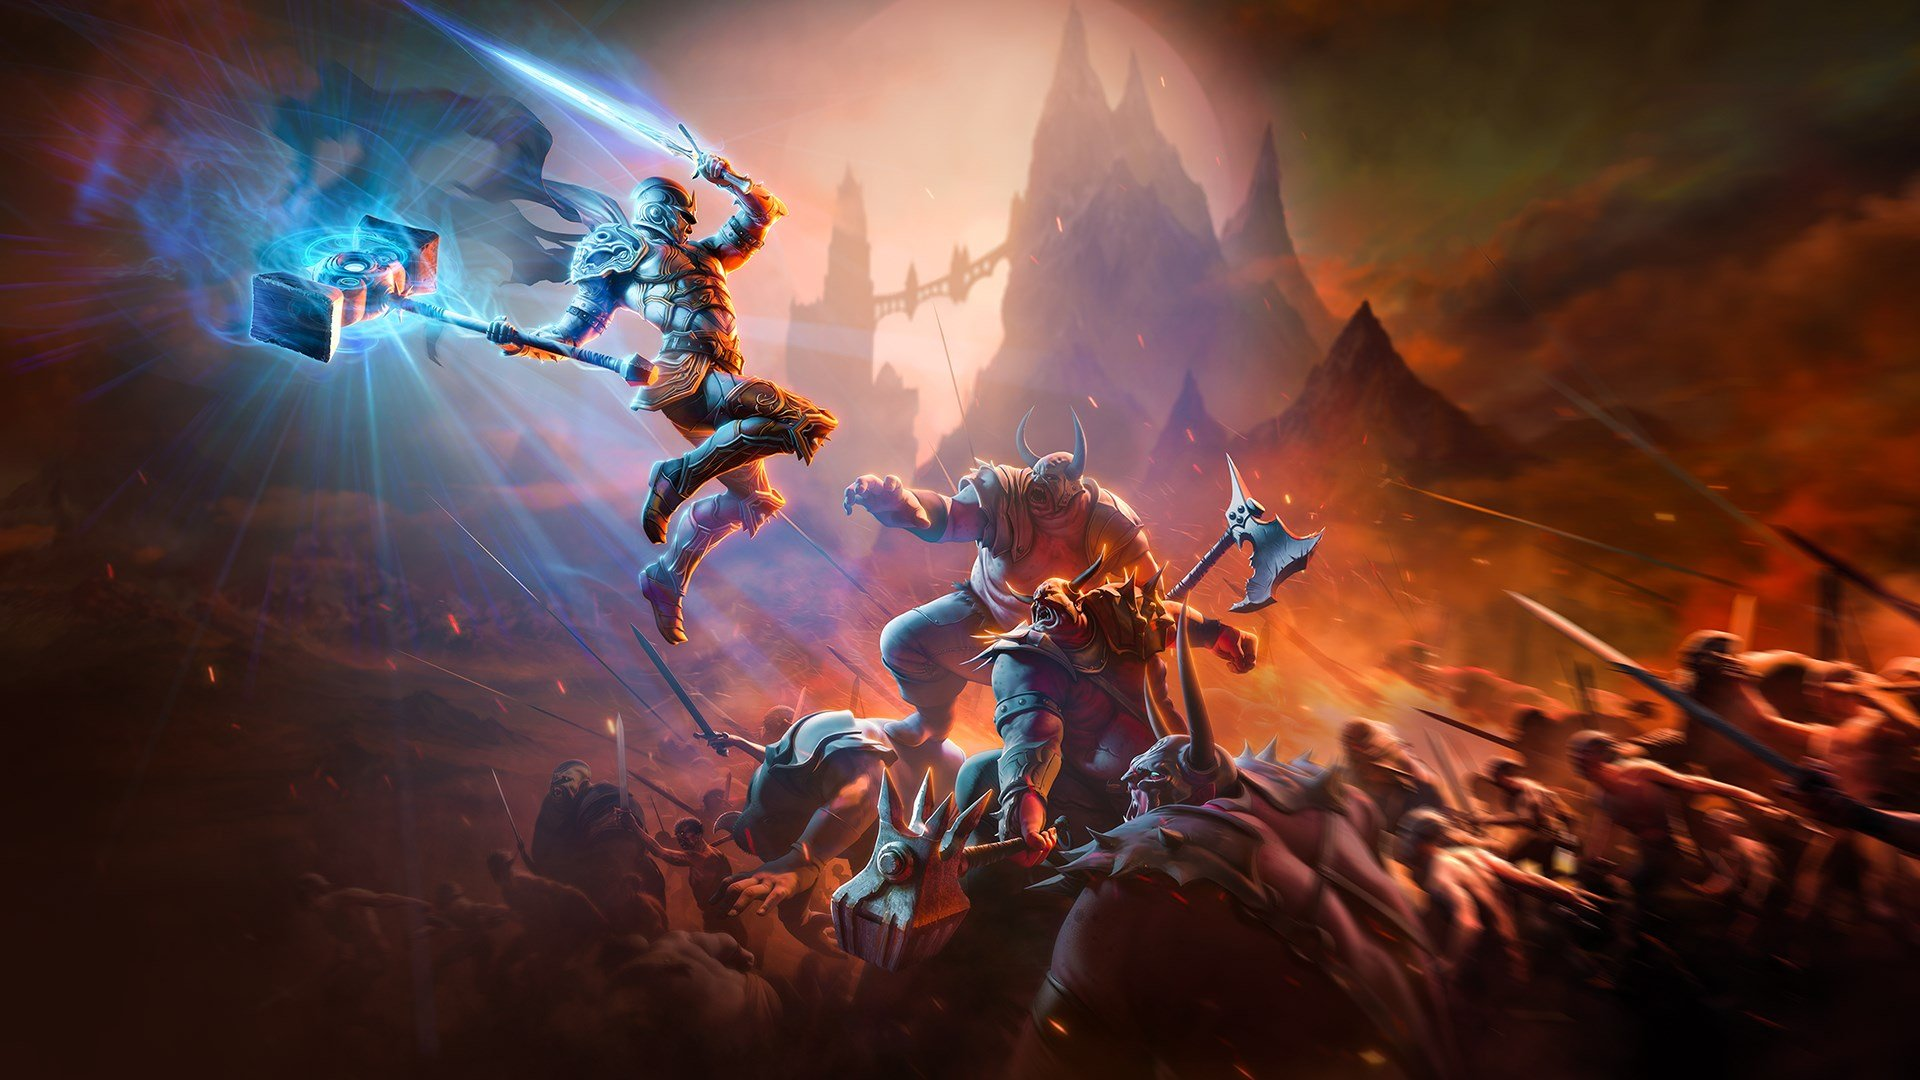 Kingdoms of Amalur: Re-Reckoning details path of sorcery in new trailer